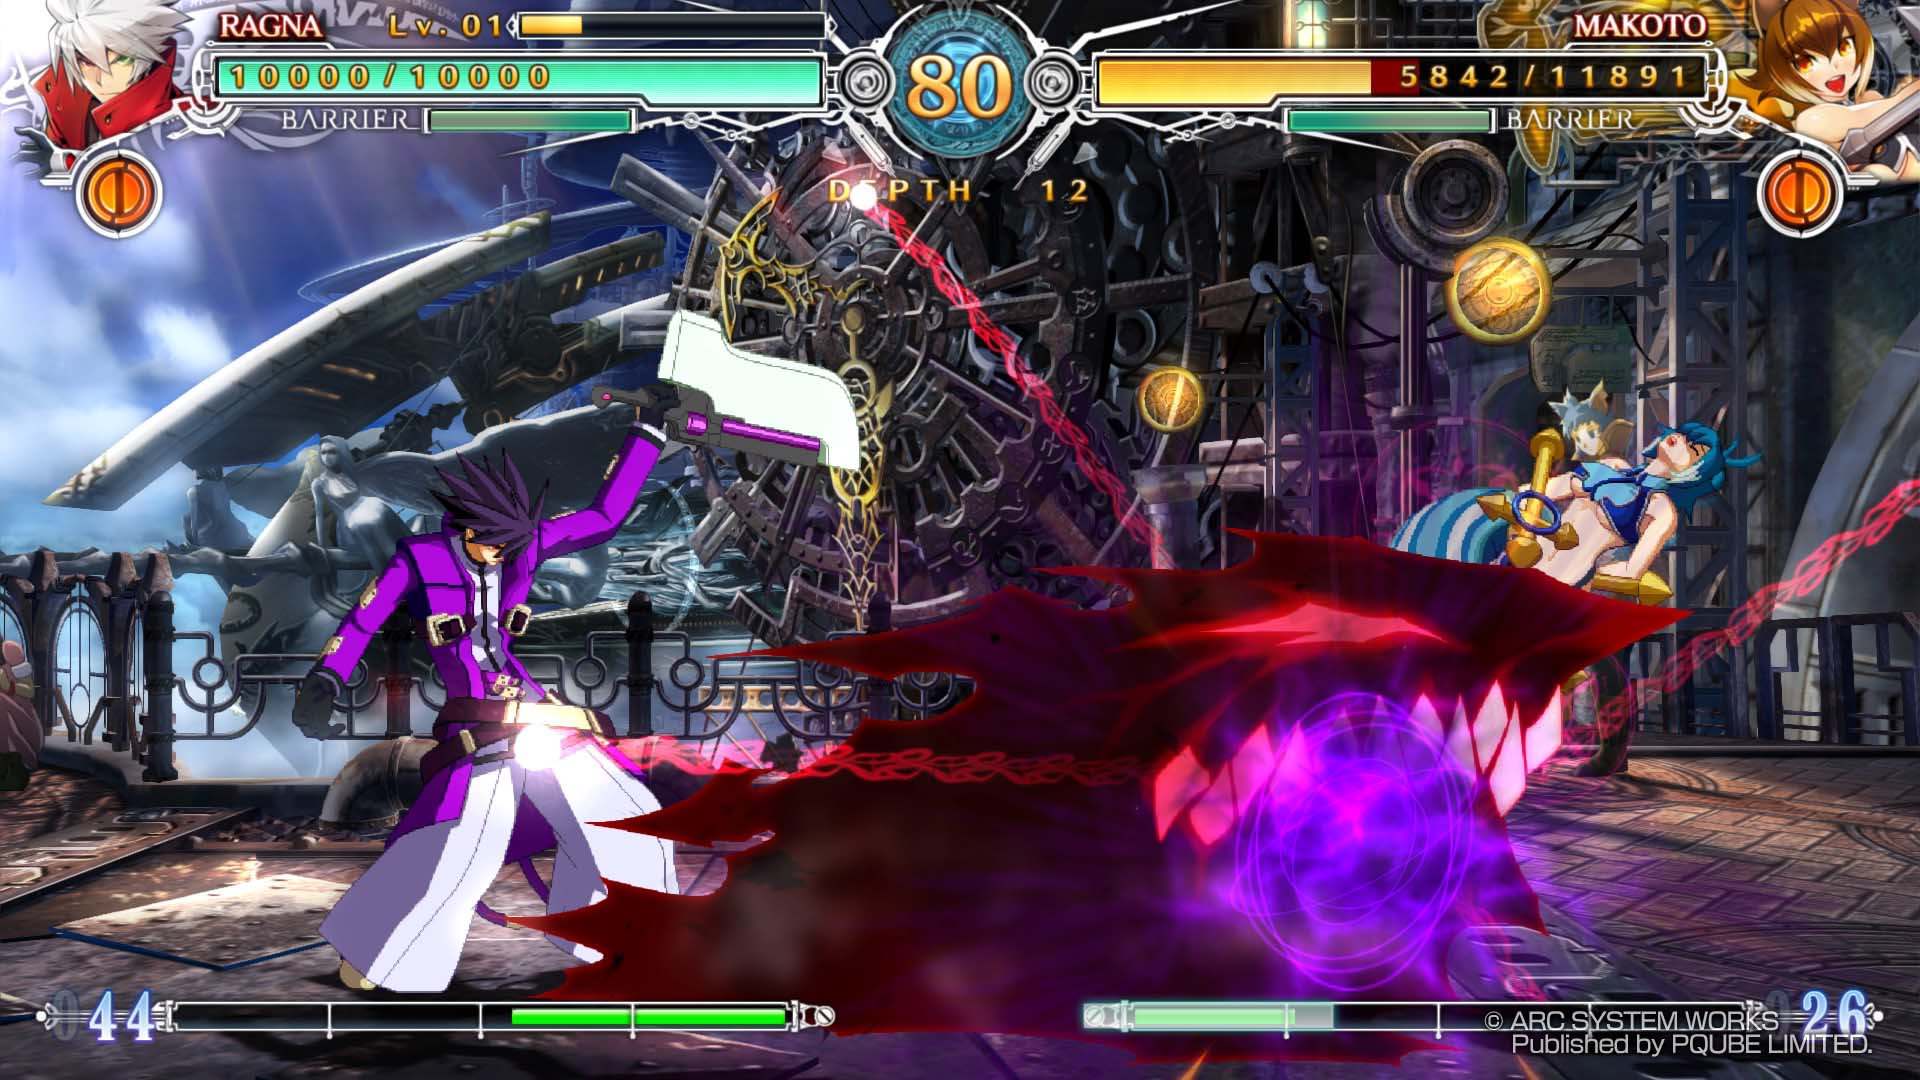 BlazBlue CentralFiction Ragna Vs Makoto